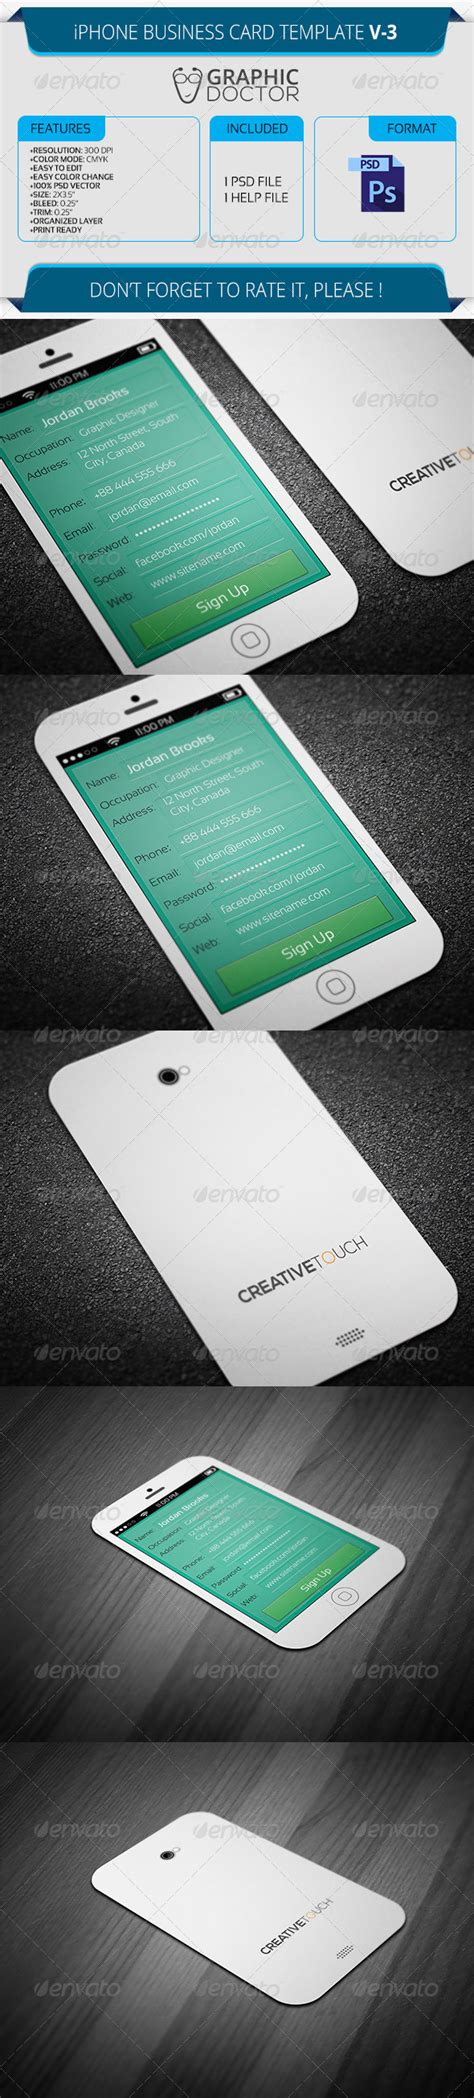 a collection of unique iphone business card designs